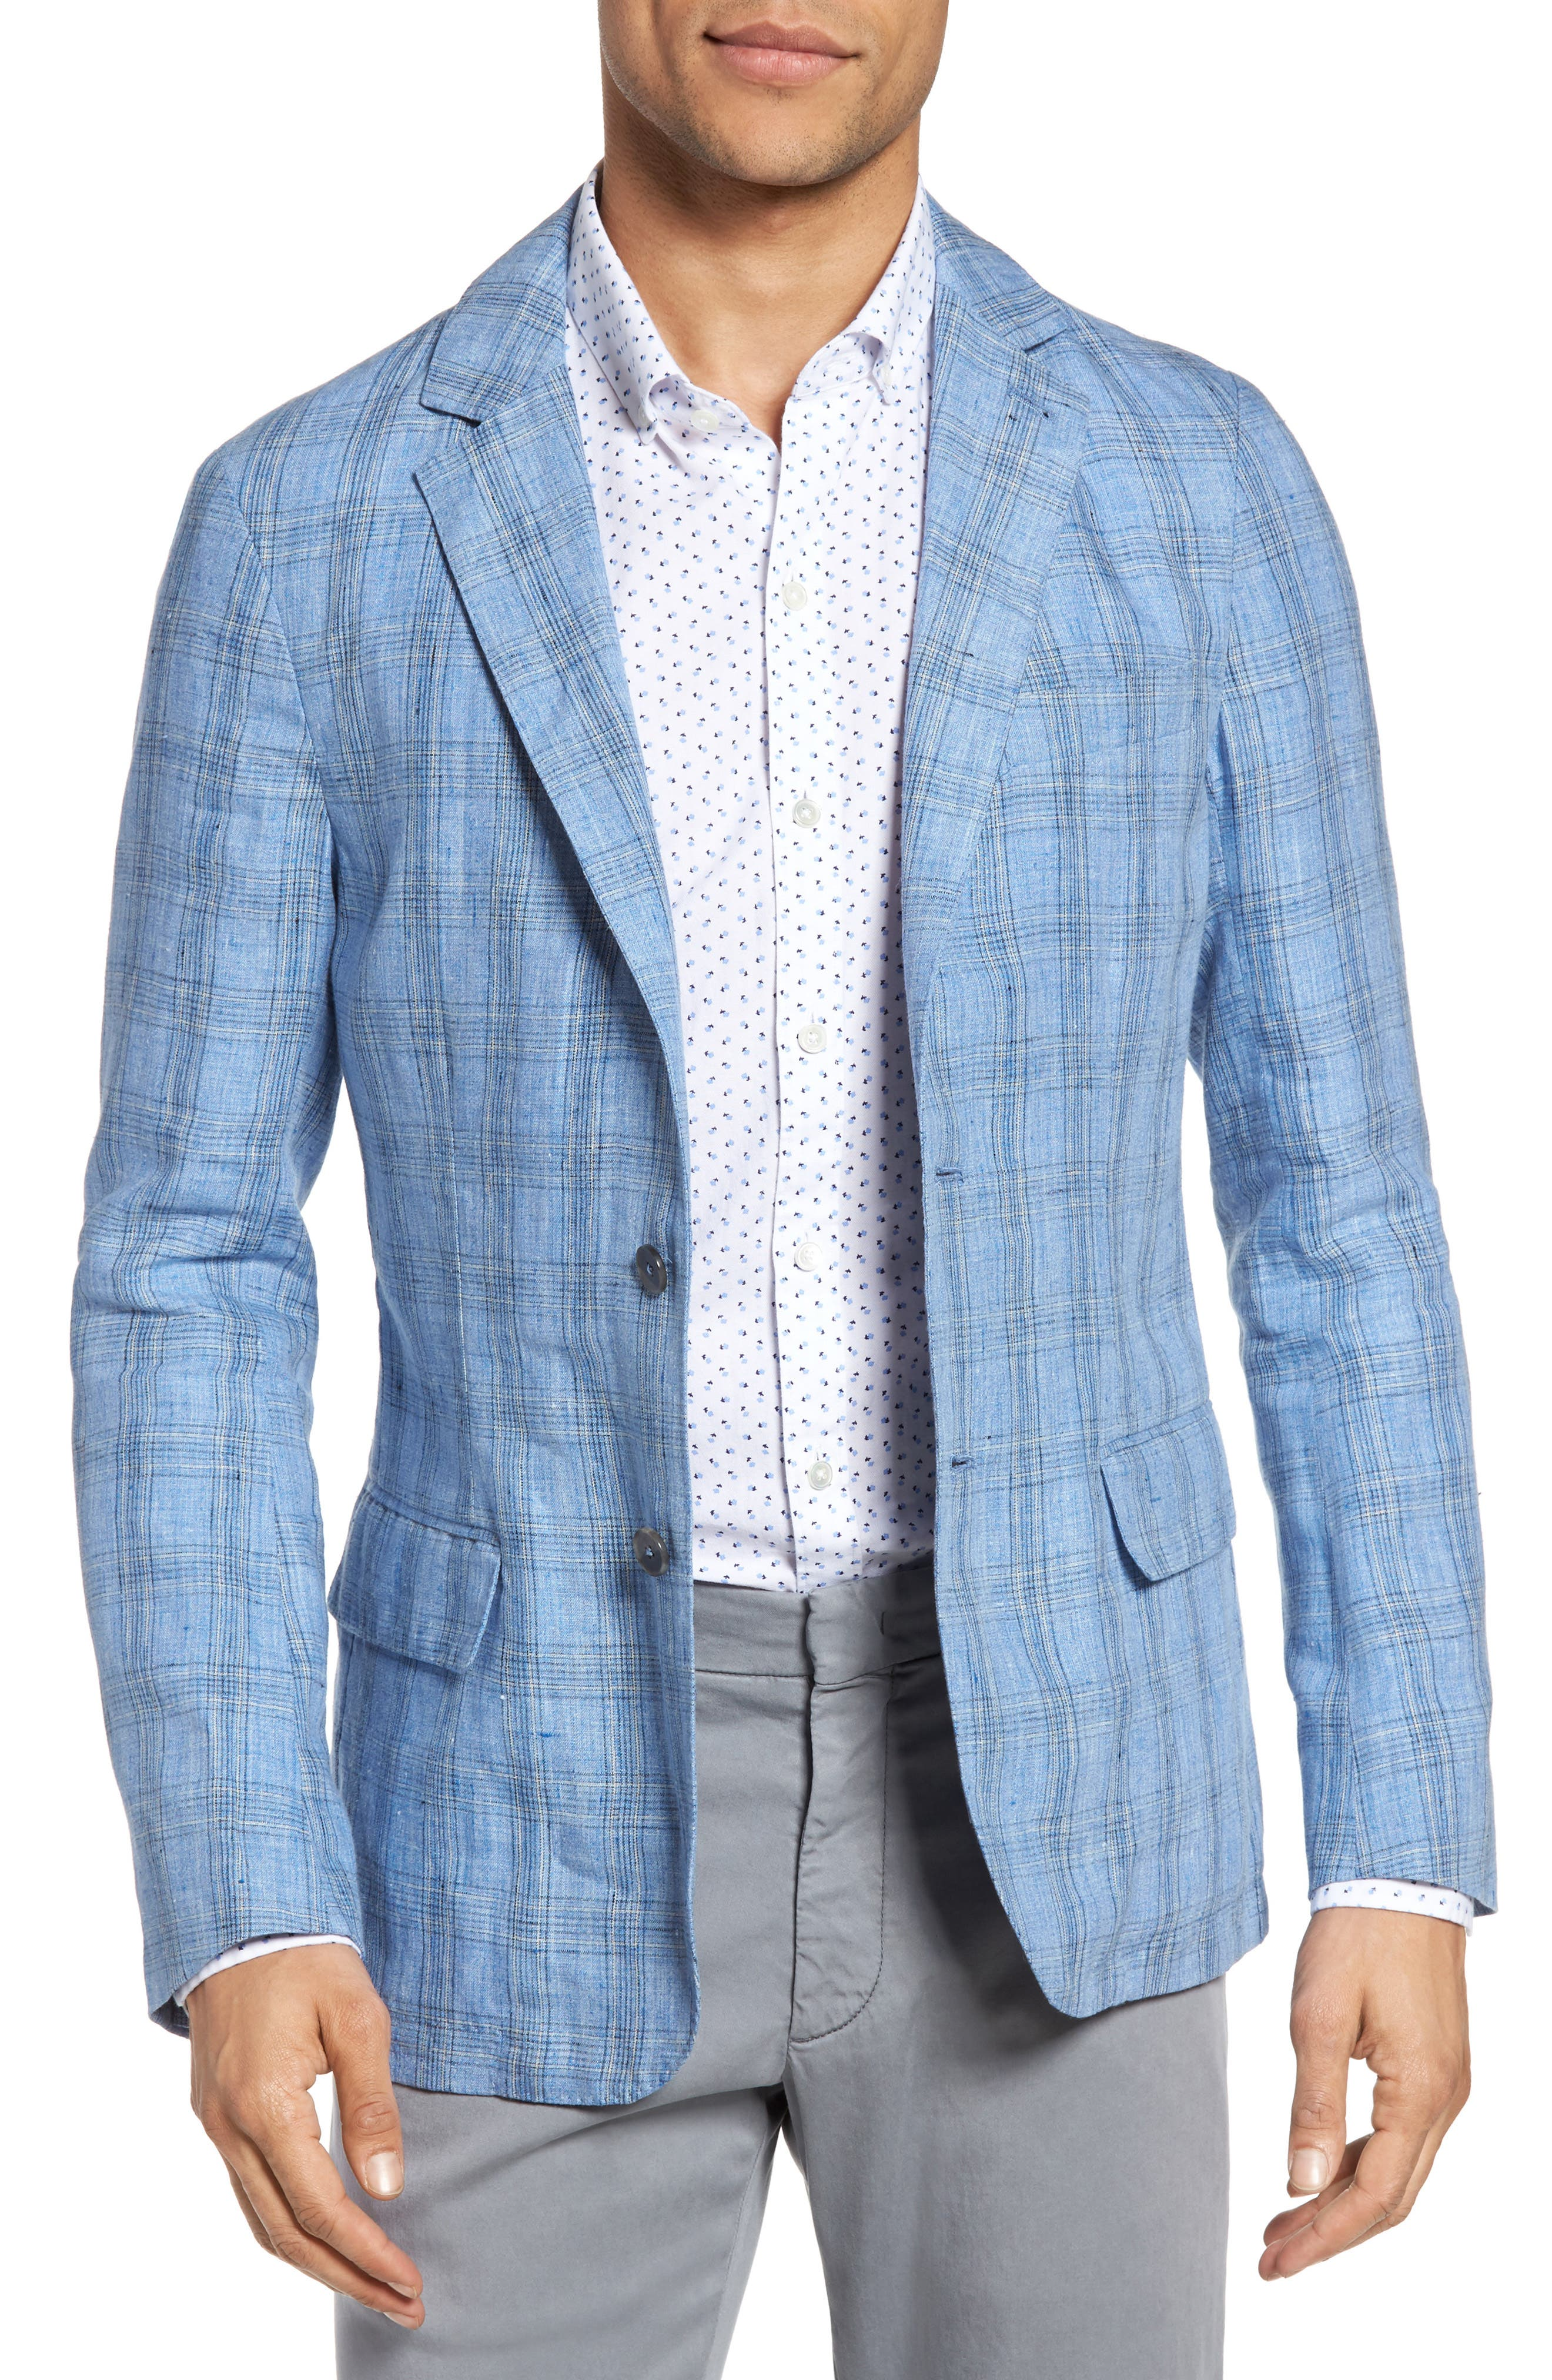 Alternate Image 1 Selected - Zachary Prell Laxus Plaid Linen Sport Coat